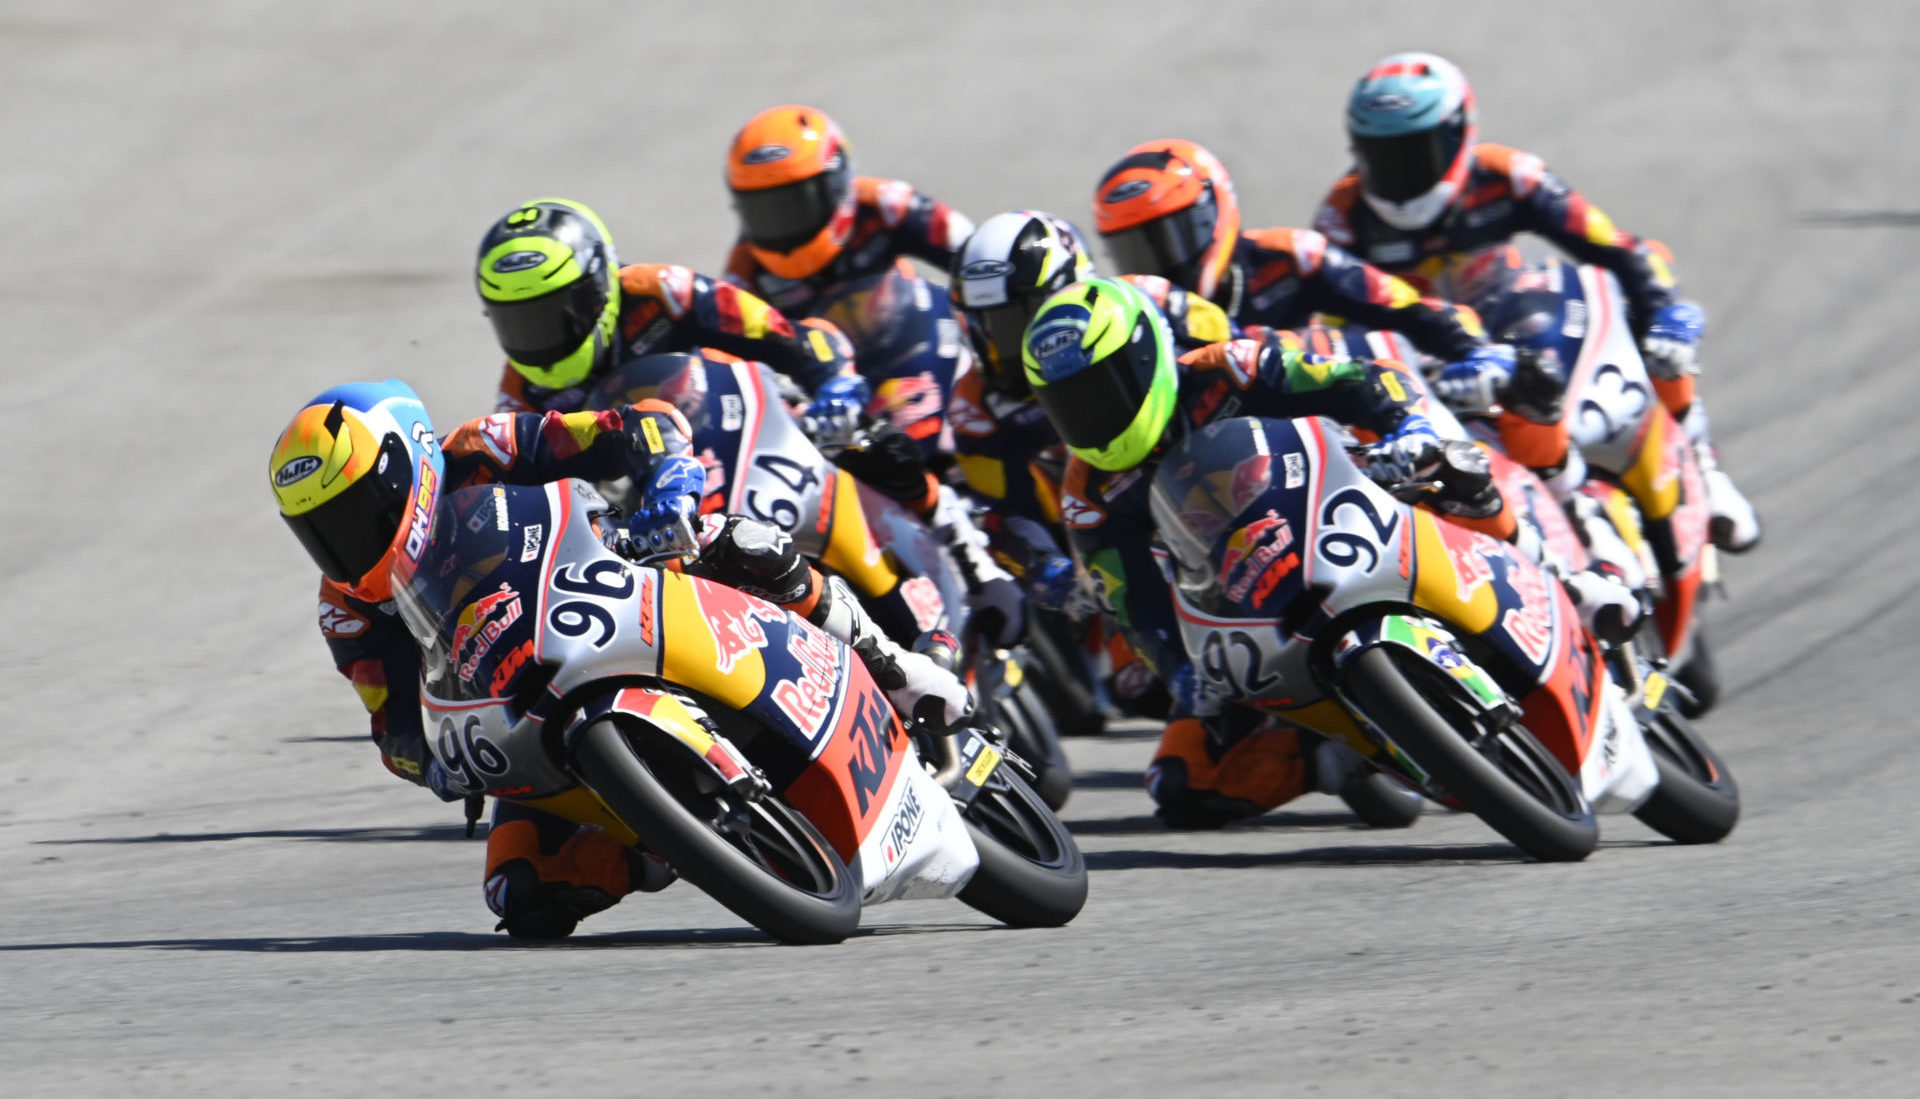 Daniel Holgado (96) leading a group of riders during Red Bull MotoGP Rookies Cup Race Two at Jerez. Photo courtesy Red Bull.